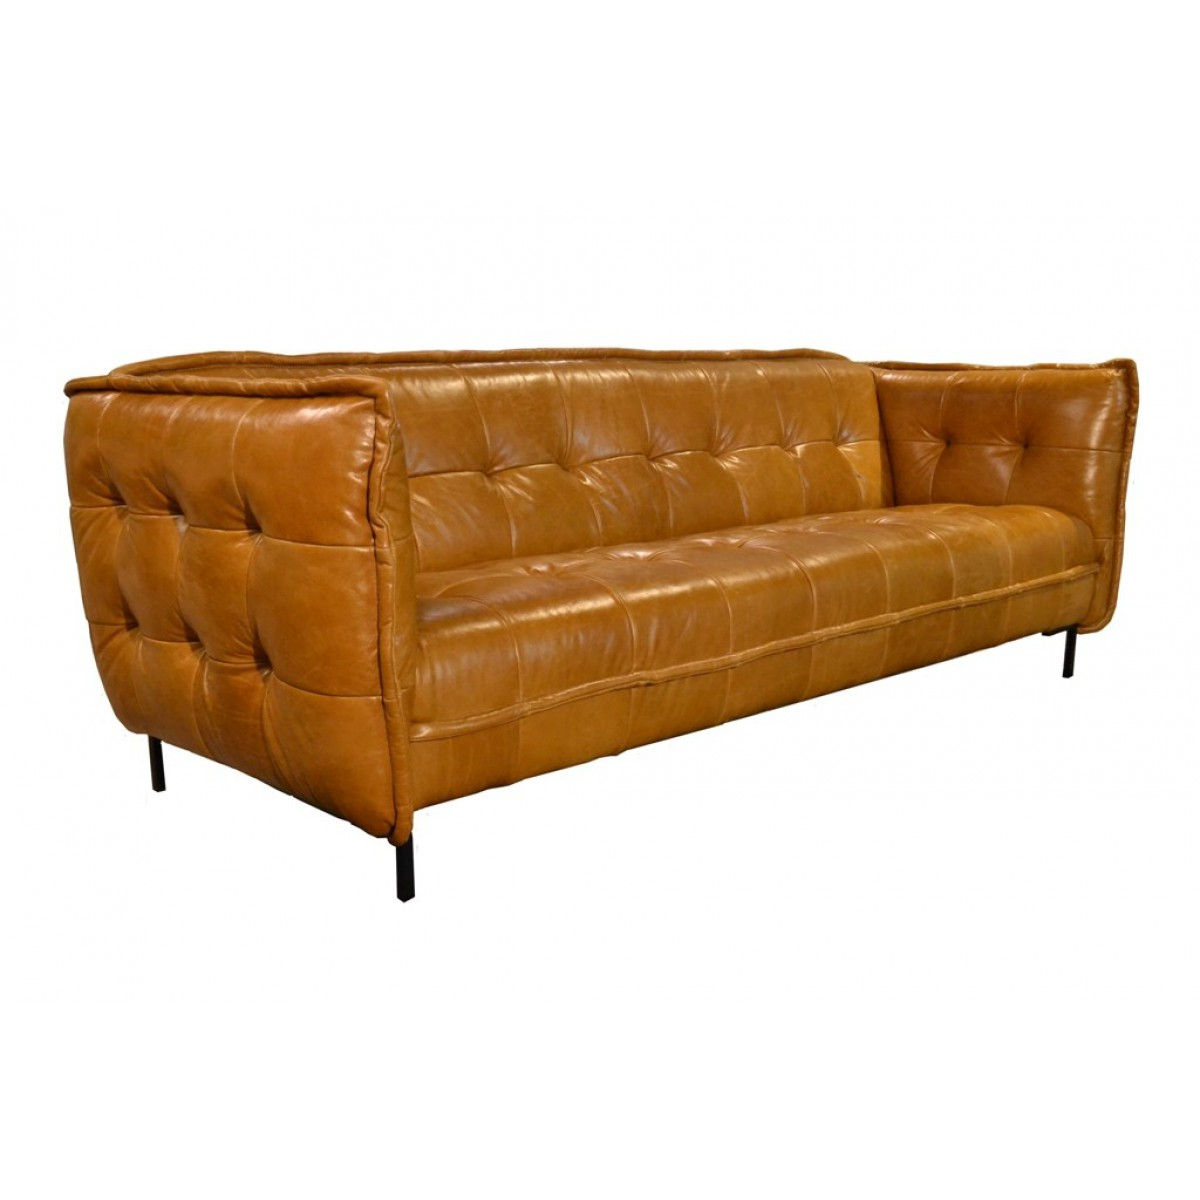 Slimm jim sofa leer cognac i live design for Sofa leder cognac